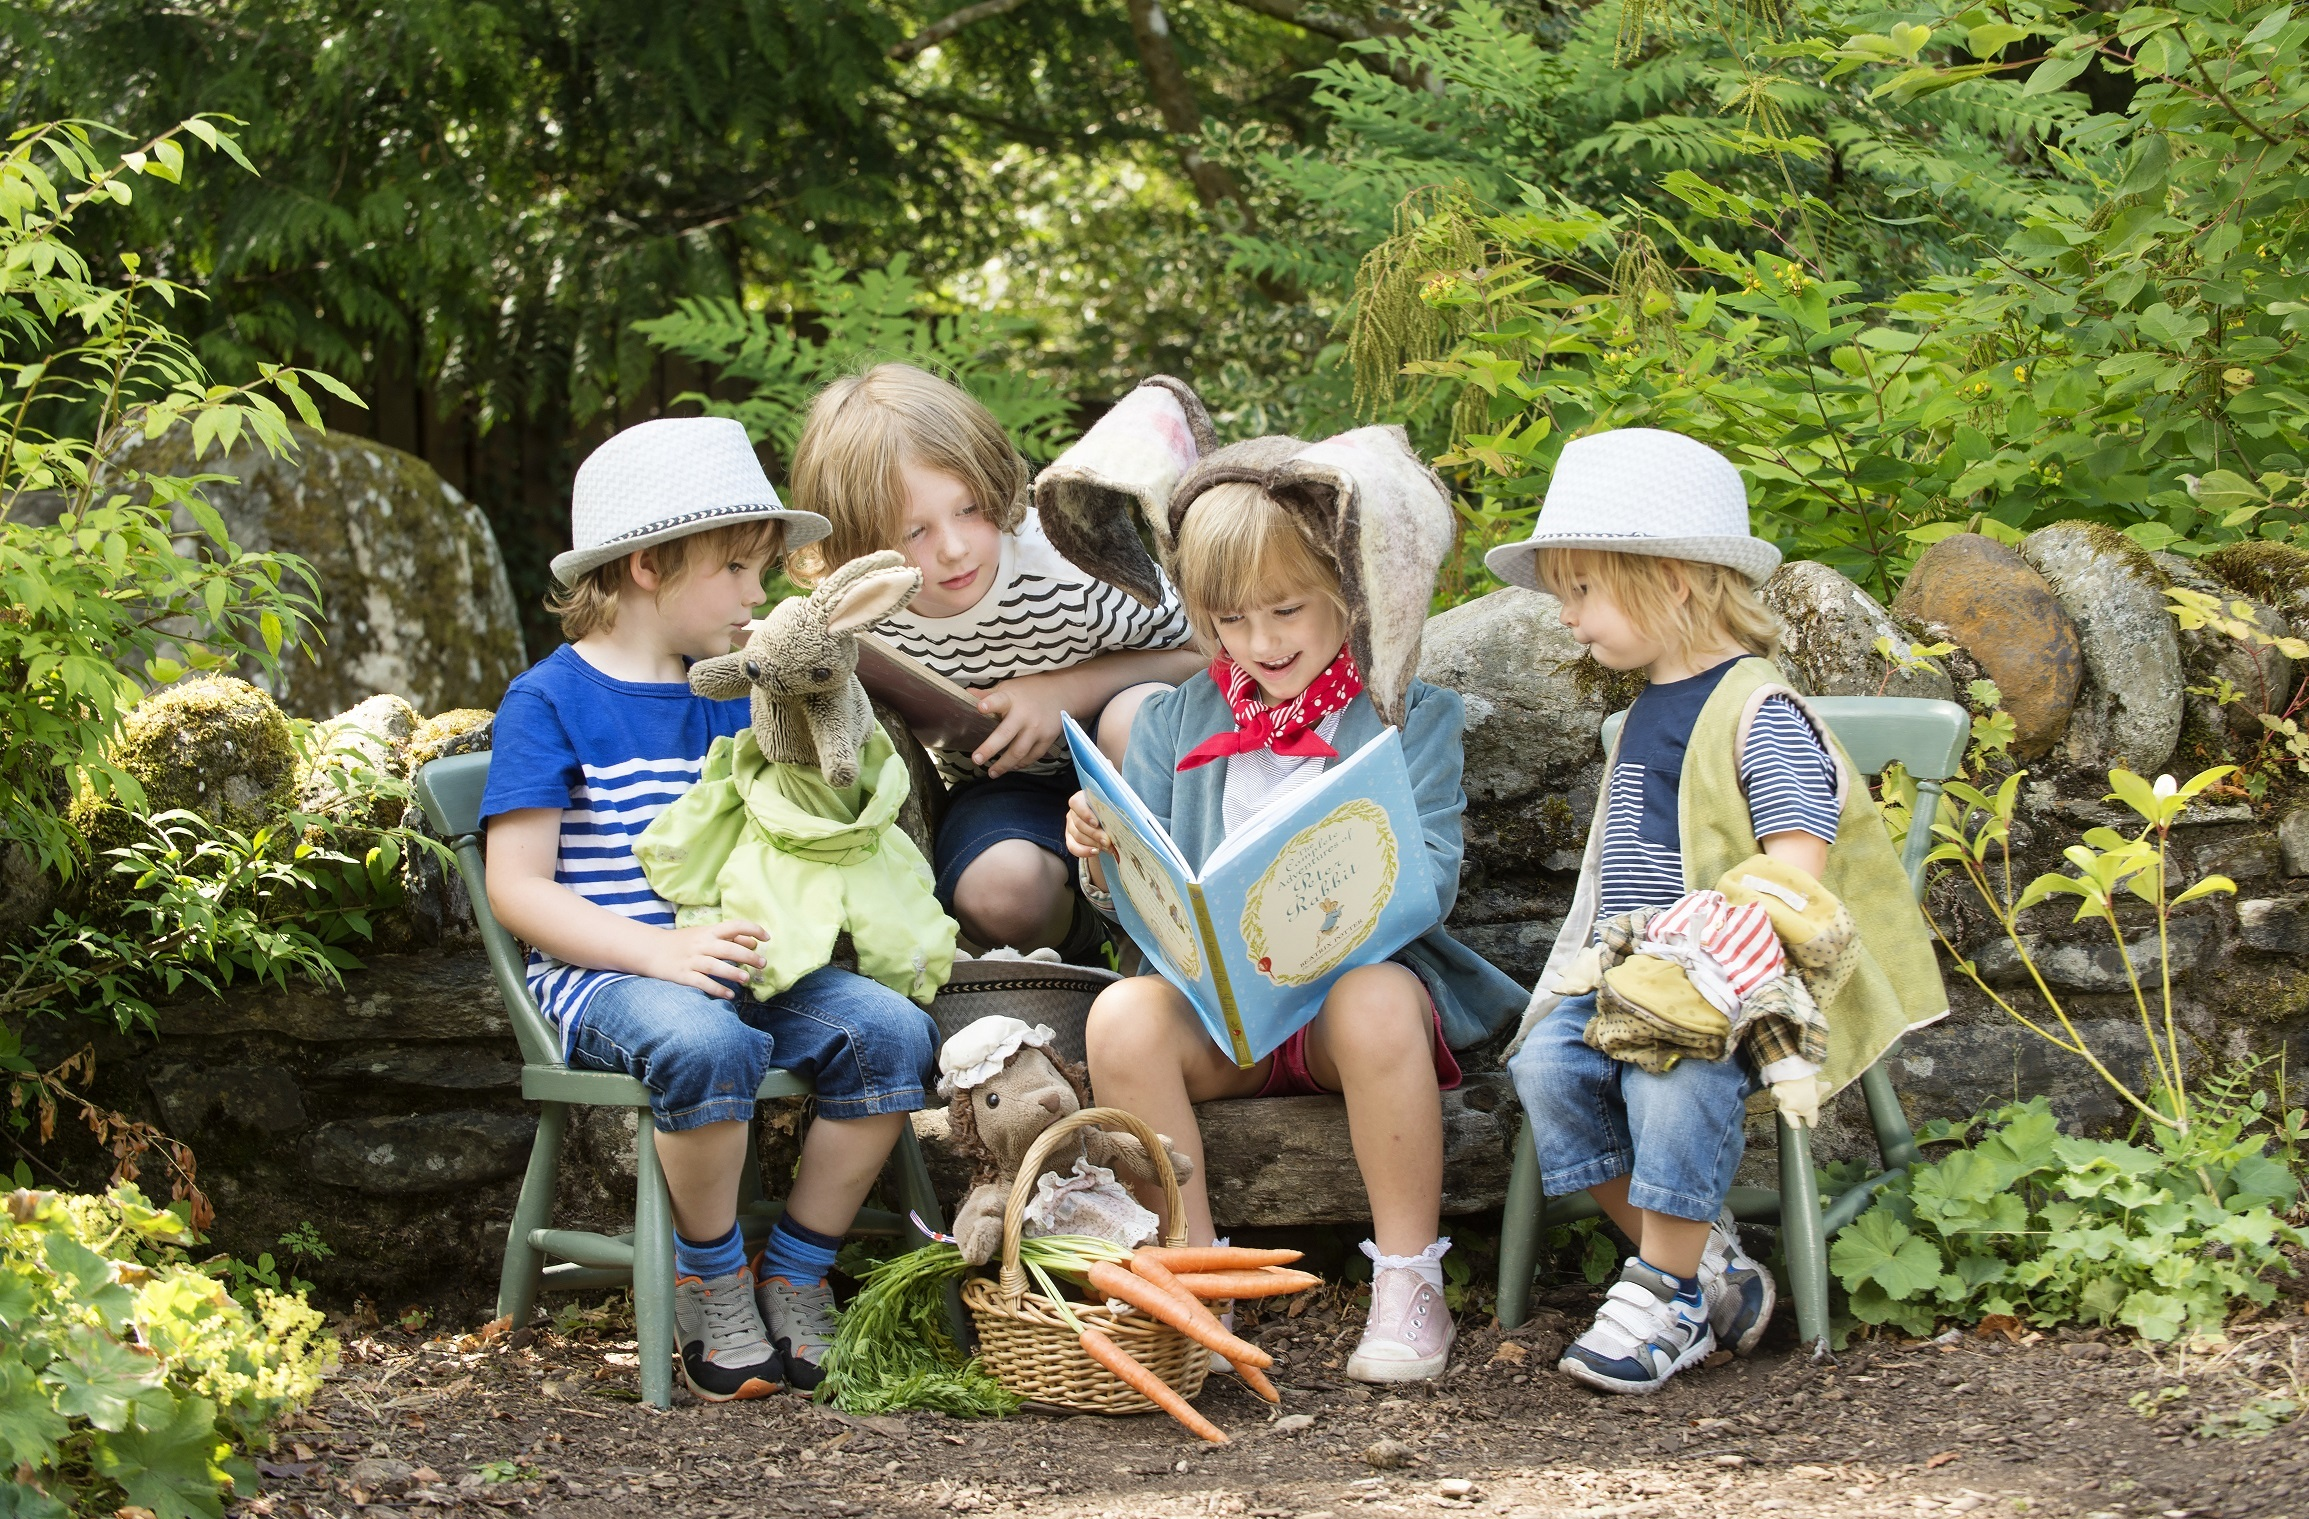 Children enjoying the map at the Beatrix Potter Exhibition and Garden at Birnam Arts, Perthshire.